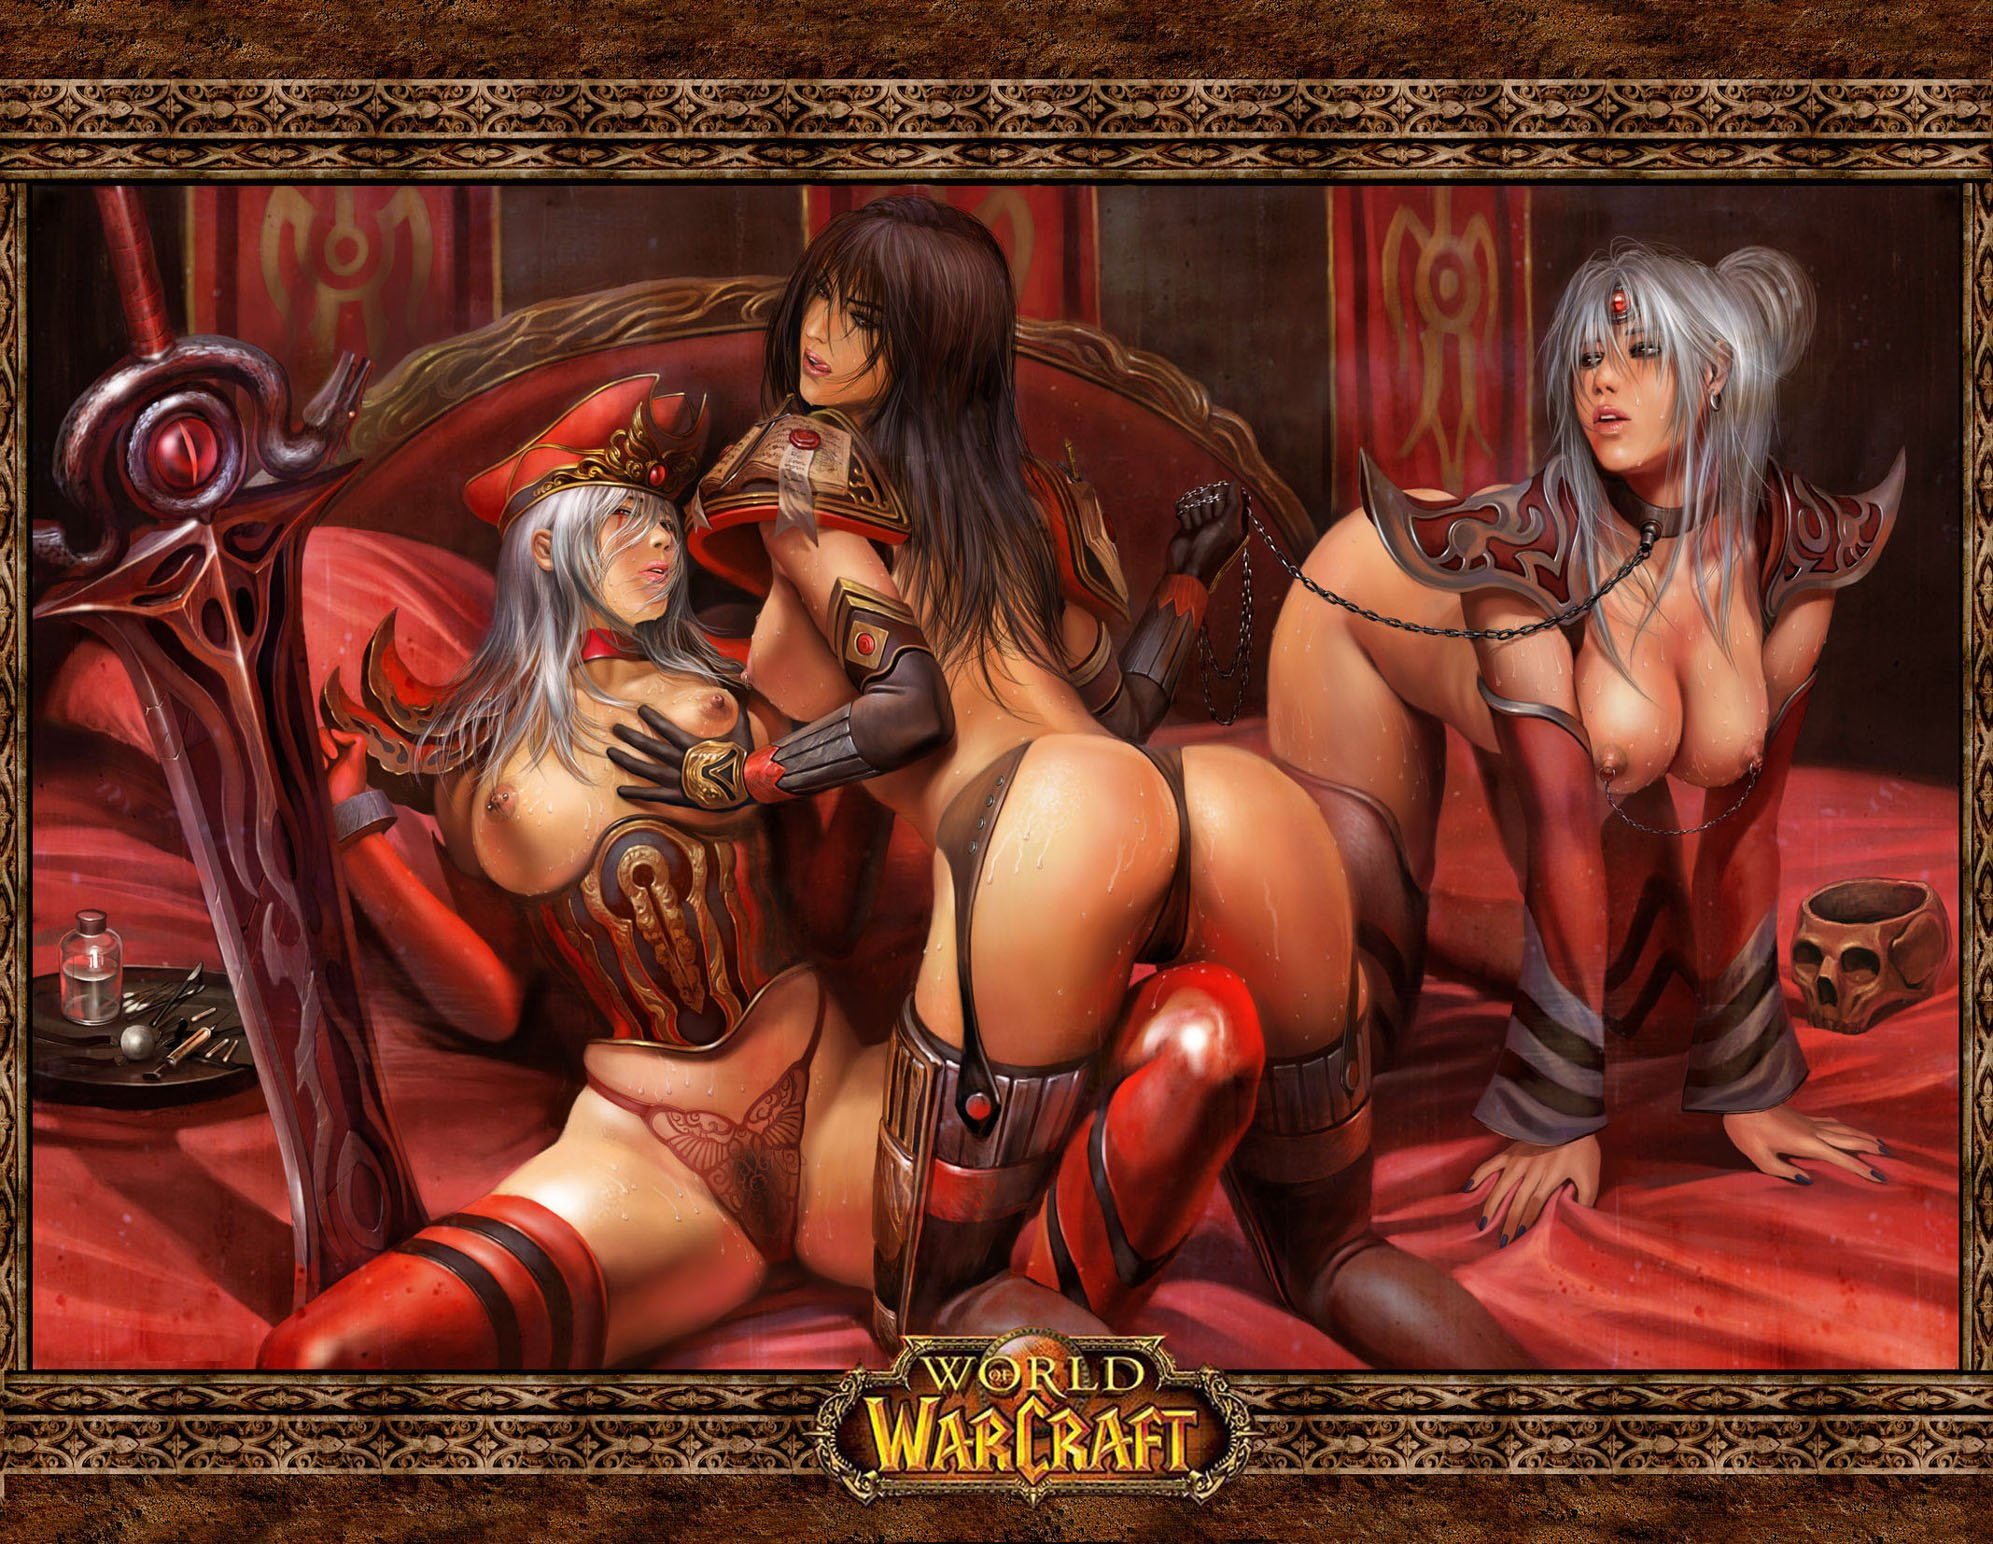 World of warcraft xxx photo erotic scenes